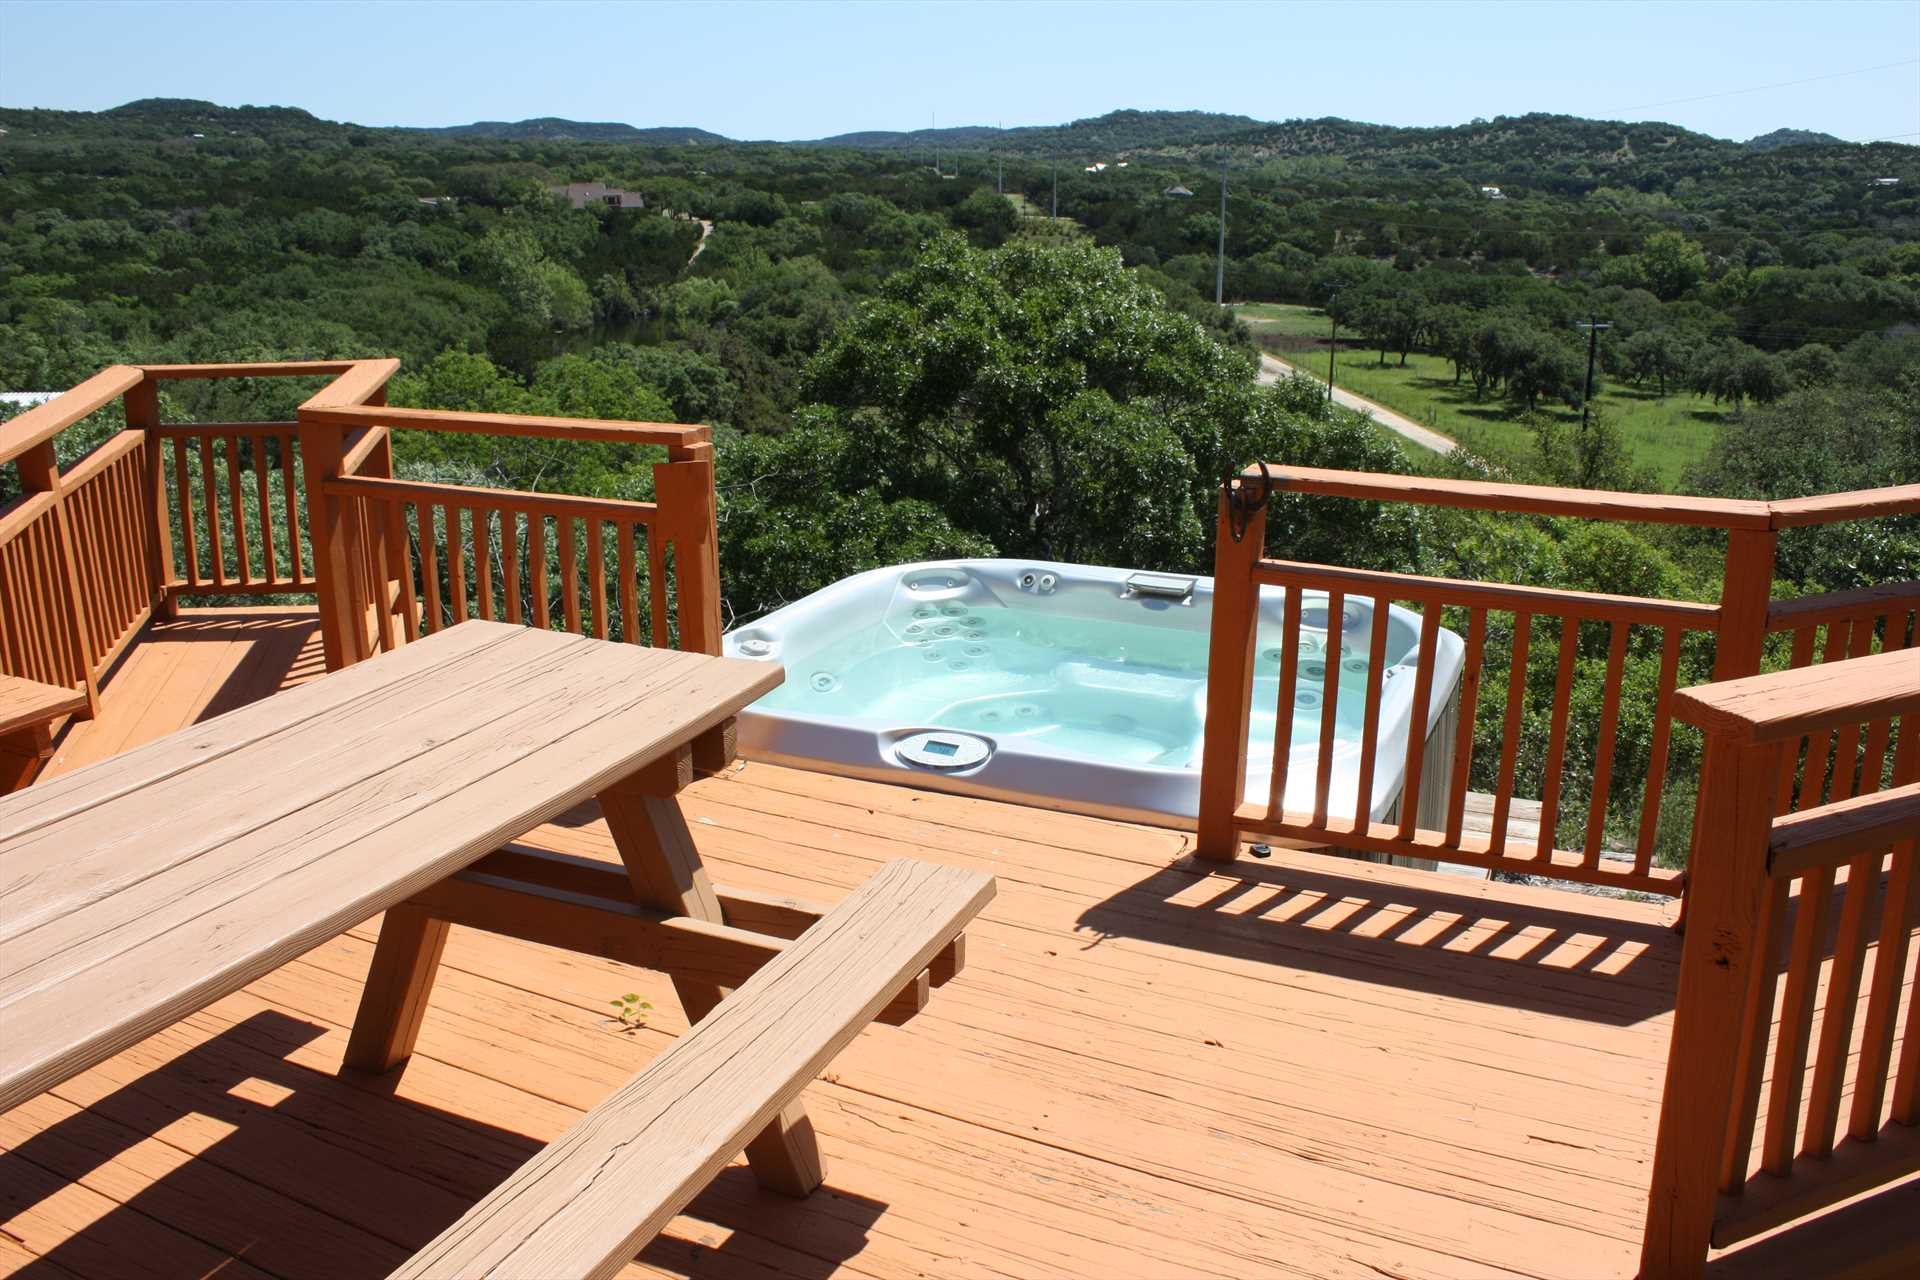 Okay, granted, there are other rentals that have hot tubs. But do theirs have THAT view?